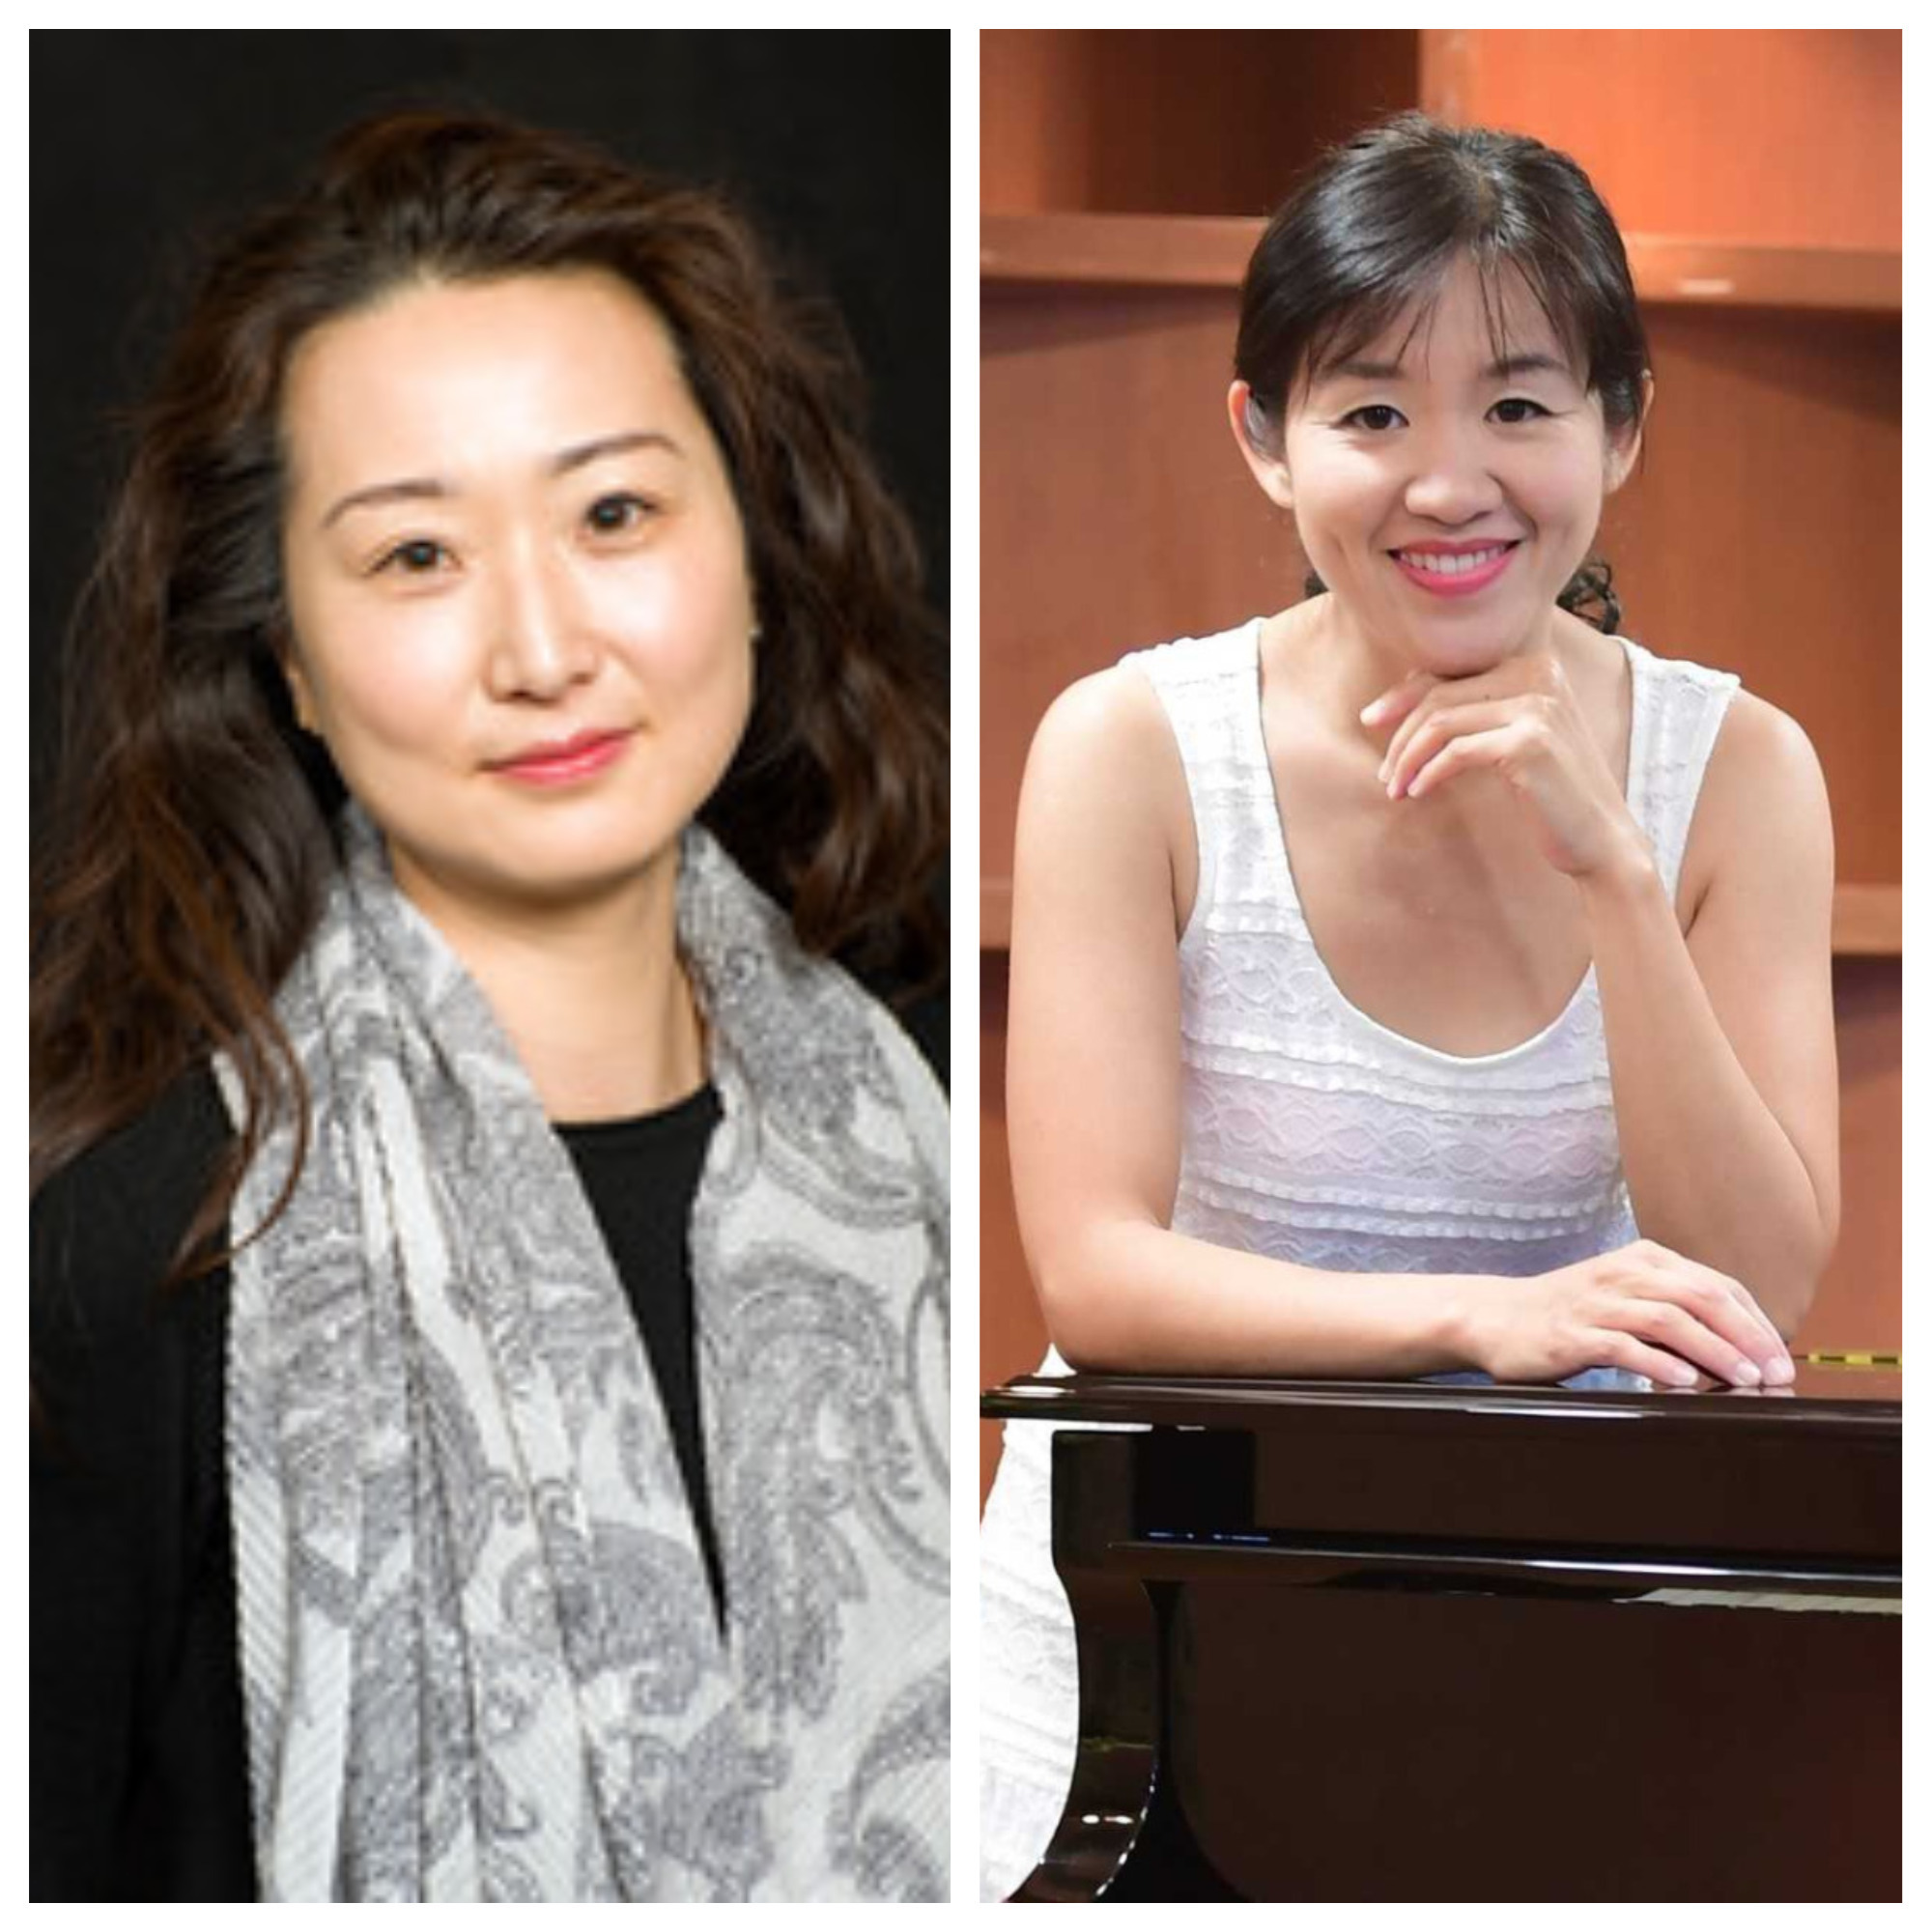 MiJung Trepanier and Wendy Chu will perform together in a faculty recital playing Beethoven and Tchaikovsky